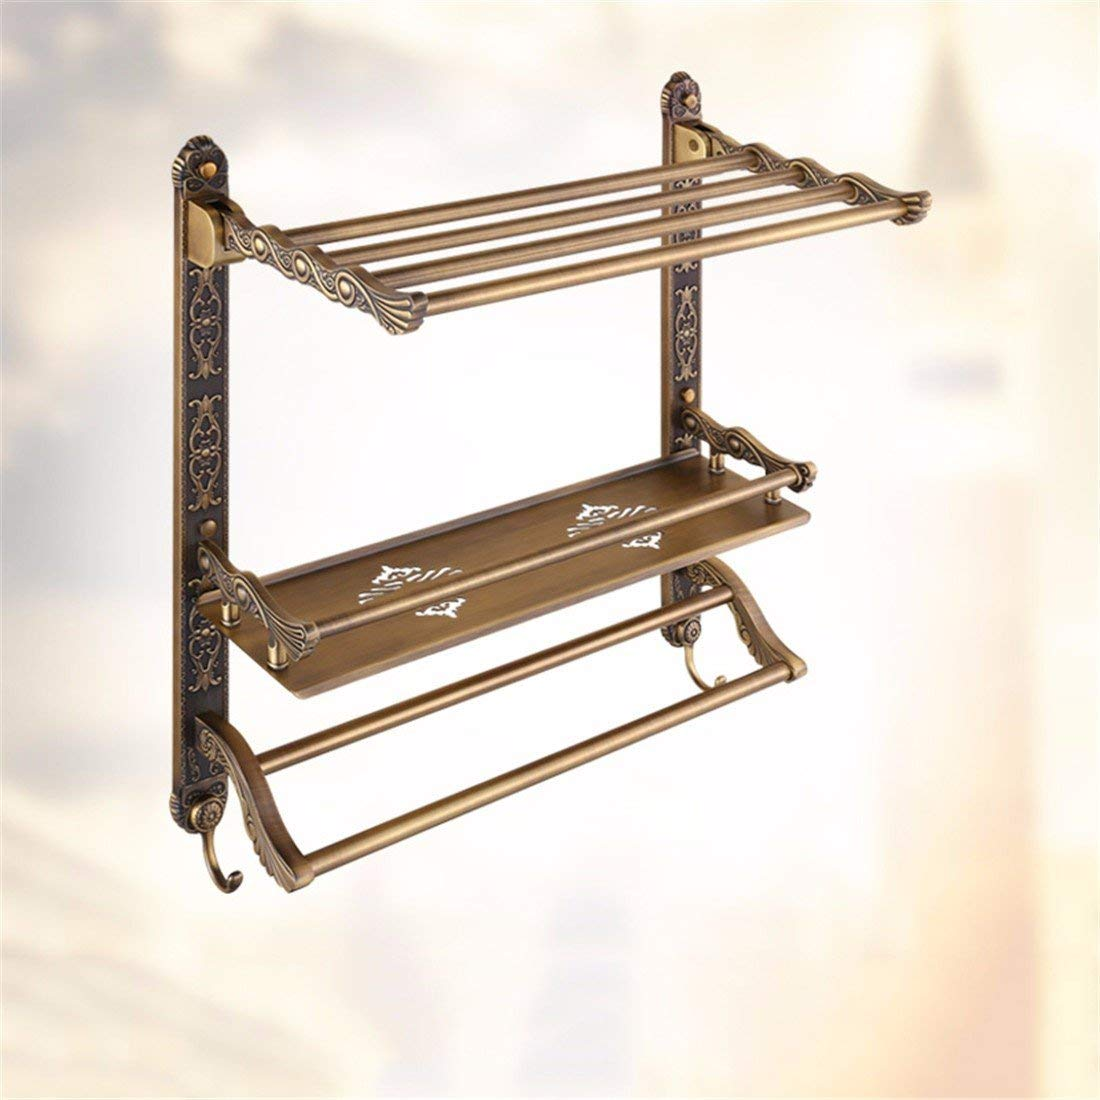 LAONA Continental antique carved bathroom accessory kit wall-mounted racks folding towel rack, built-in shelf 2